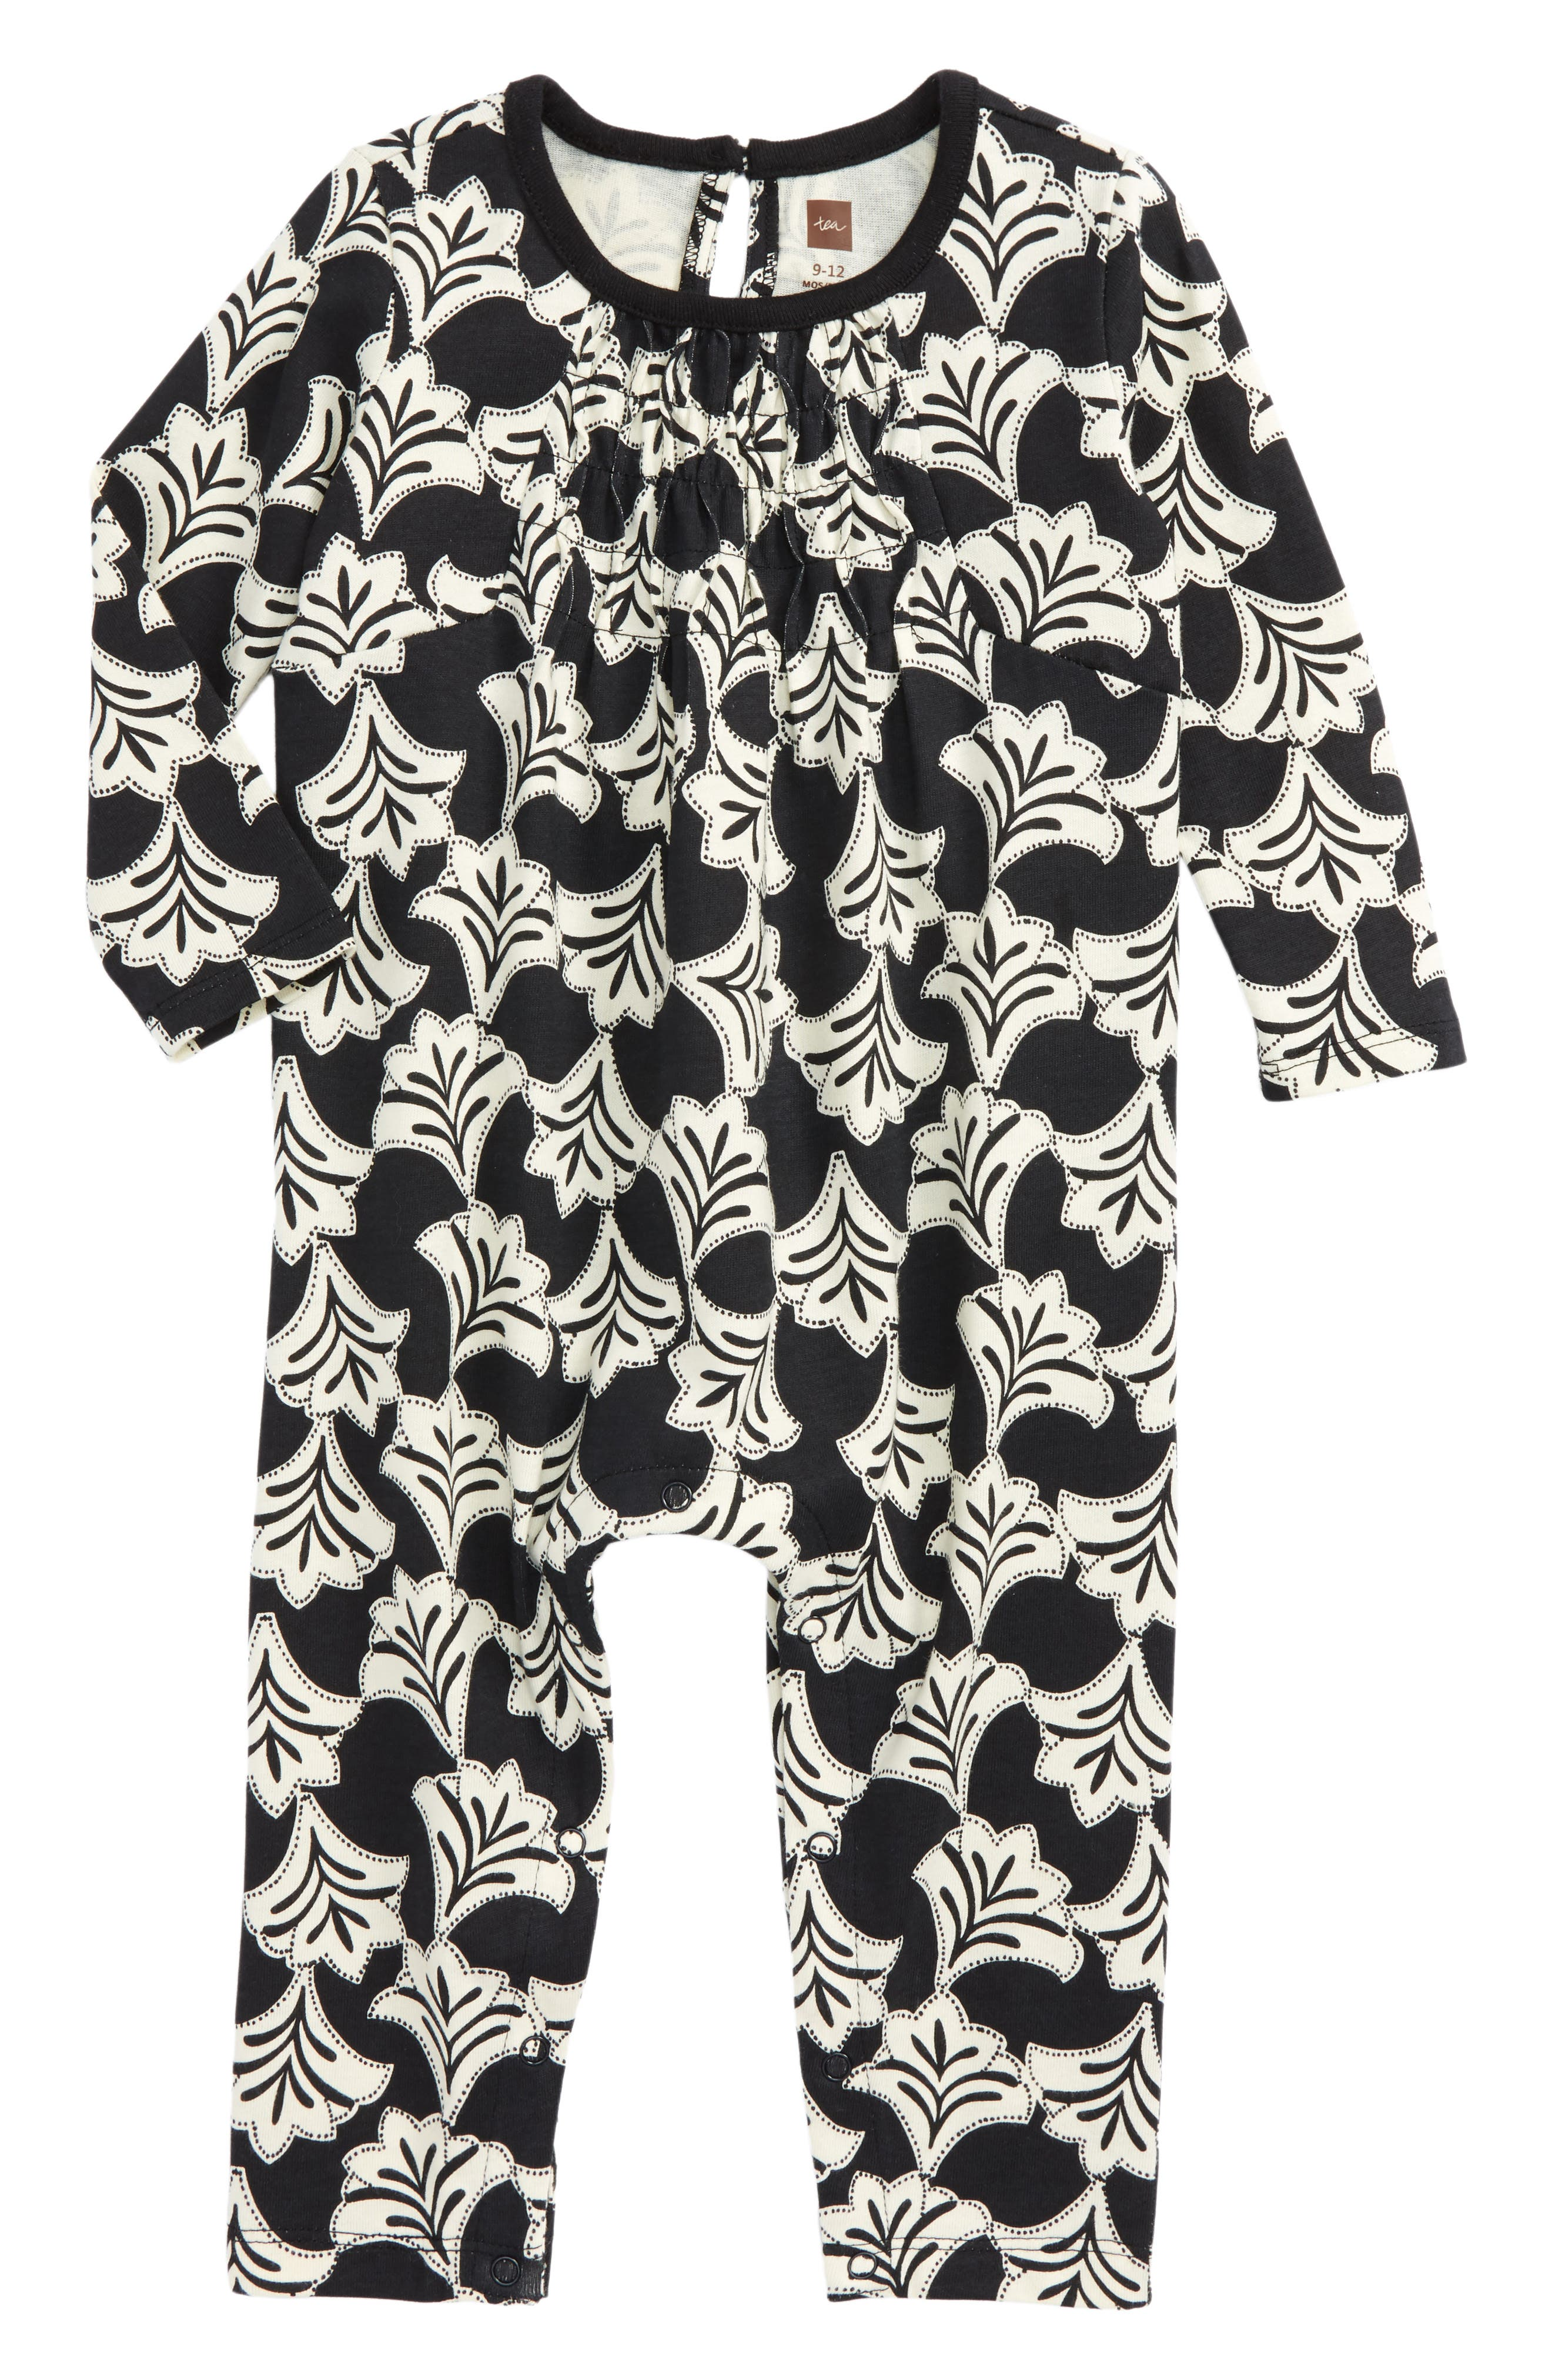 Alternate Image 1 Selected - Tea Collection Aven Smocked Romper (Baby Girls)